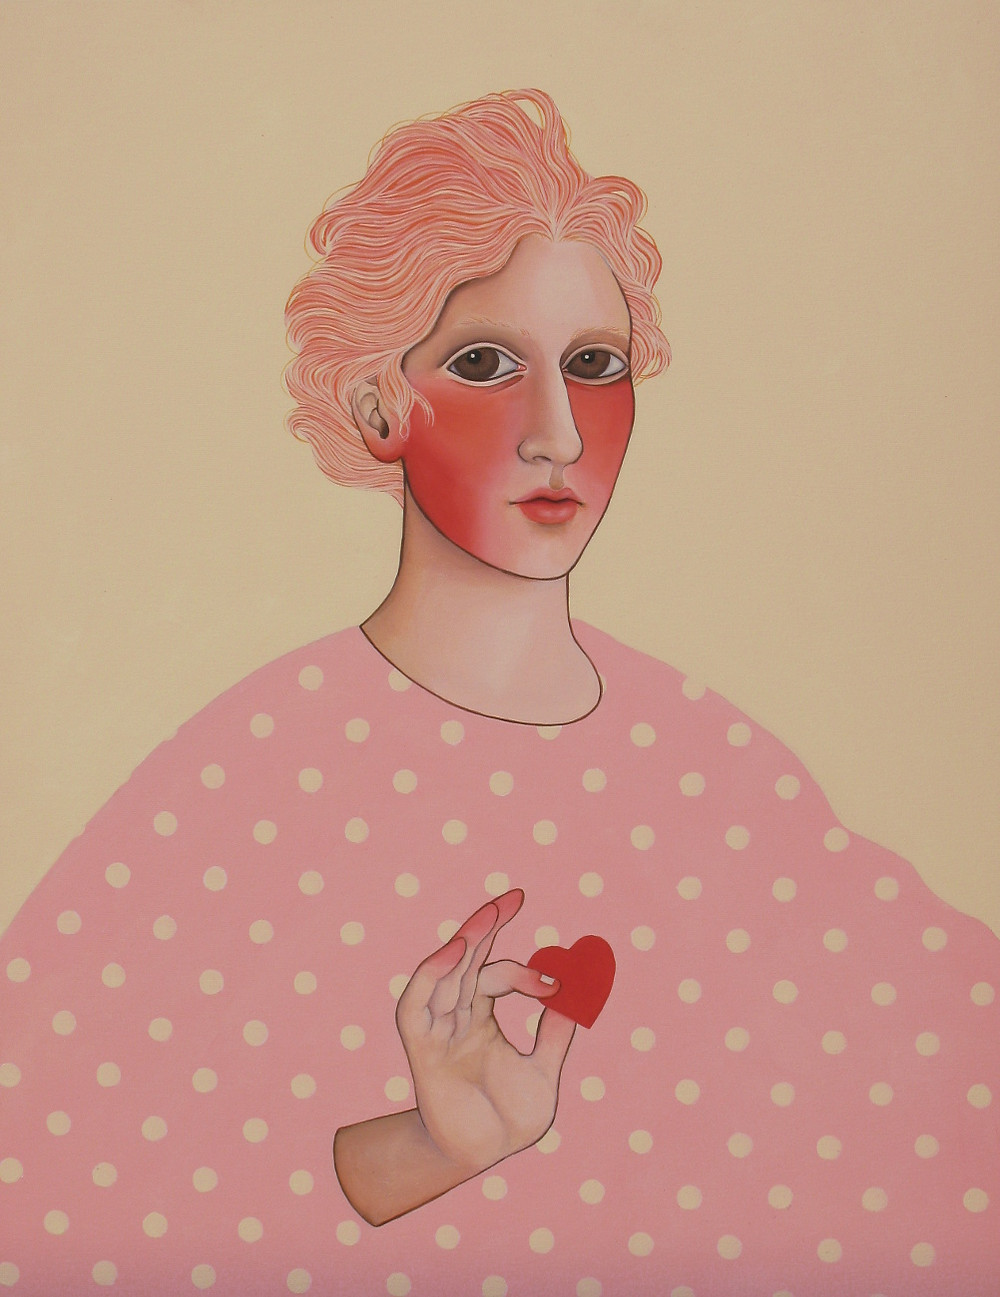 """""""Take another little piece of my heart"""", acrylic on canvas, 60x80 cm, 2018"""